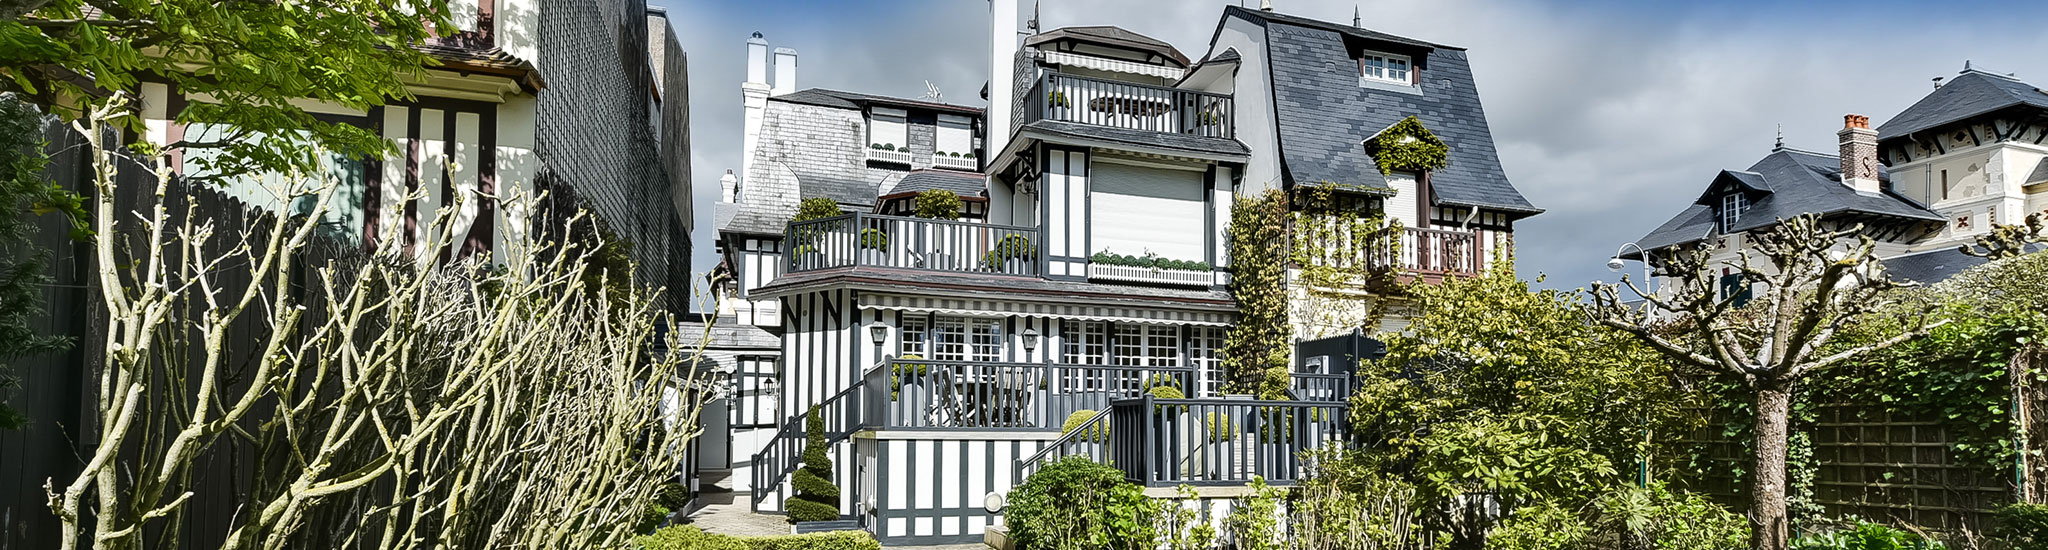 DEAUVILLE - 14800 In Deauville's Golden Triangle, BARNES DEAUVILLE presents this gorgeou...